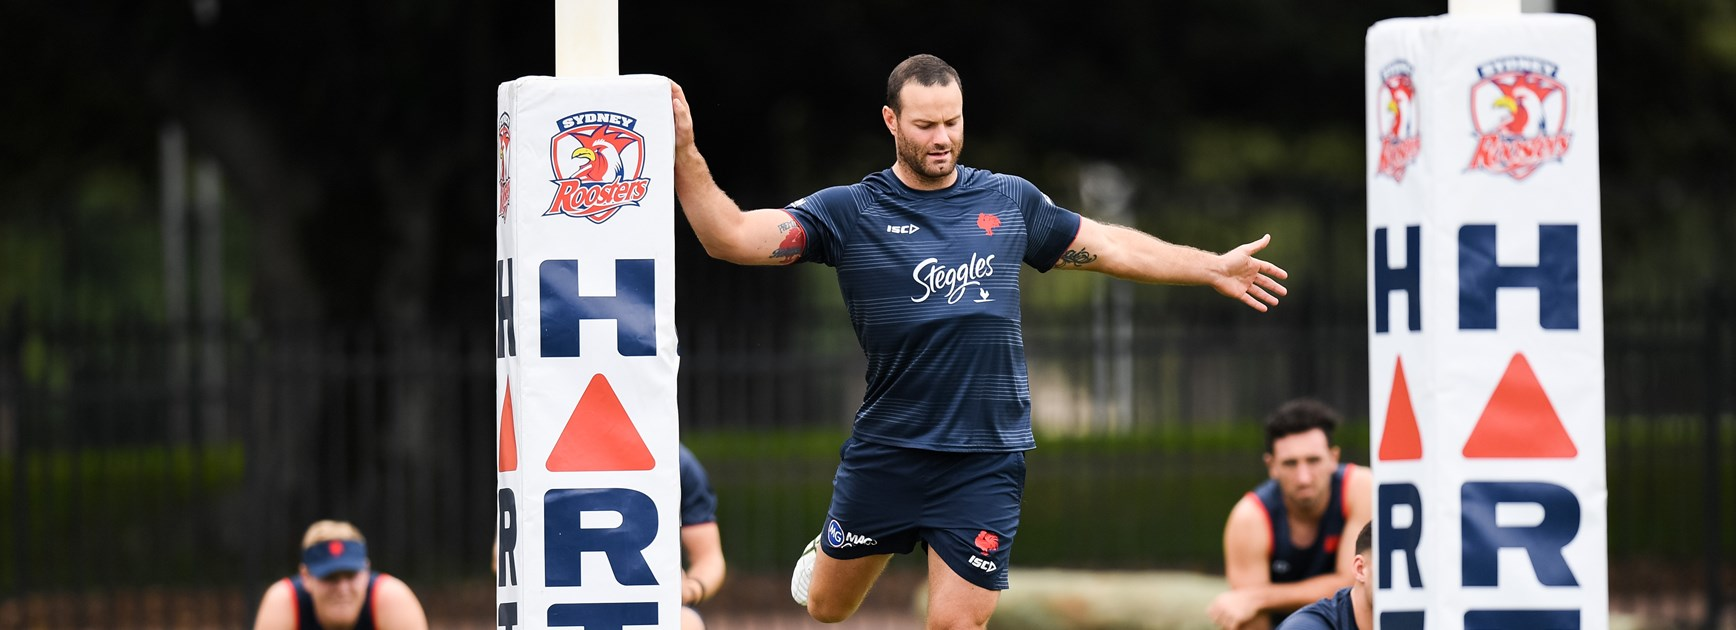 Origin over so it's down to title business for Cordner